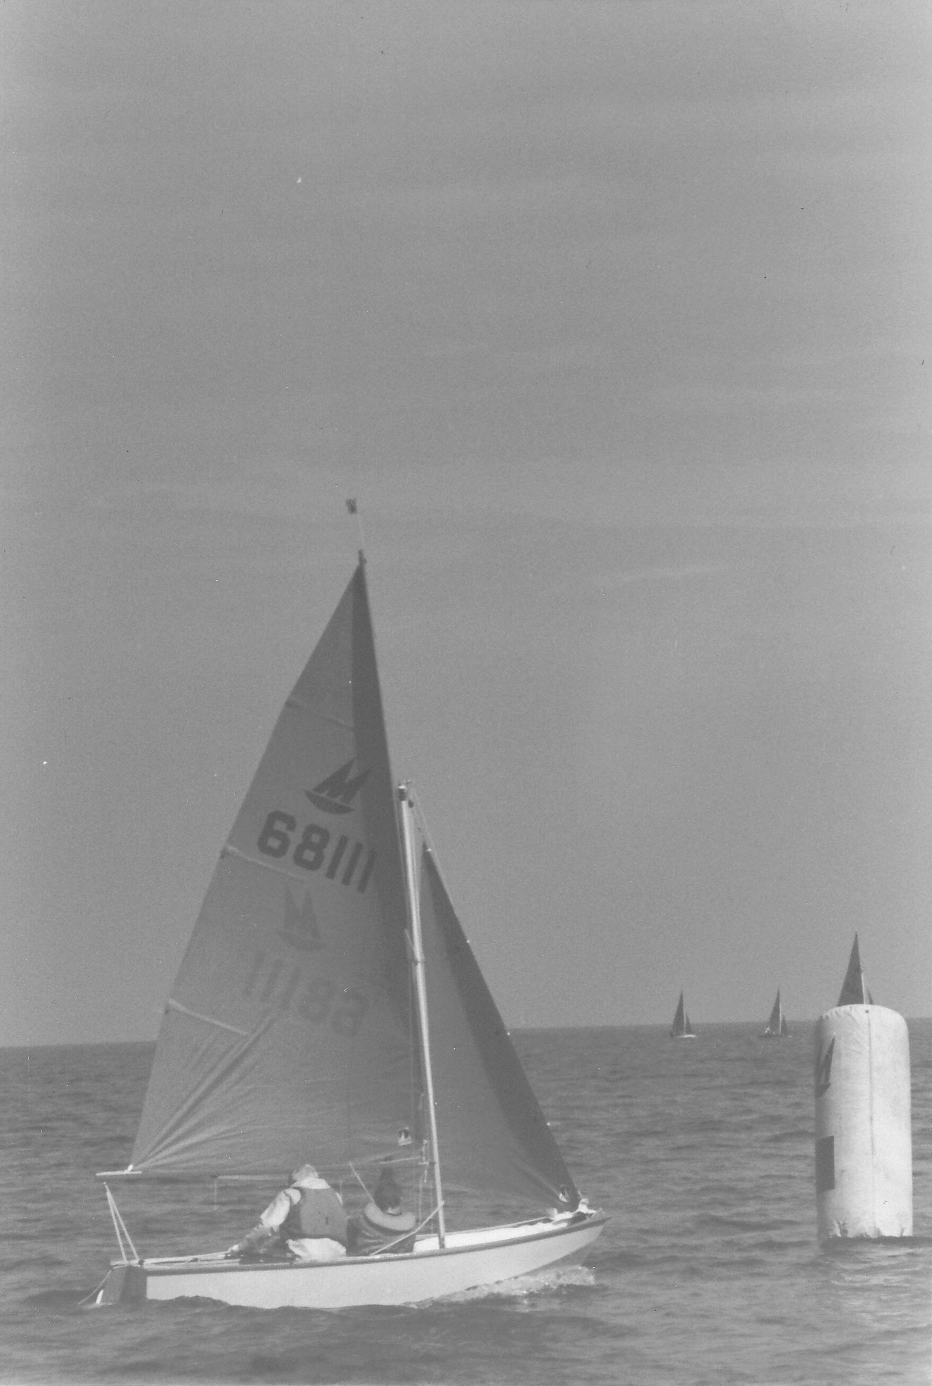 A wooden Mirror dinghy racing to windward with the windward mark nearby